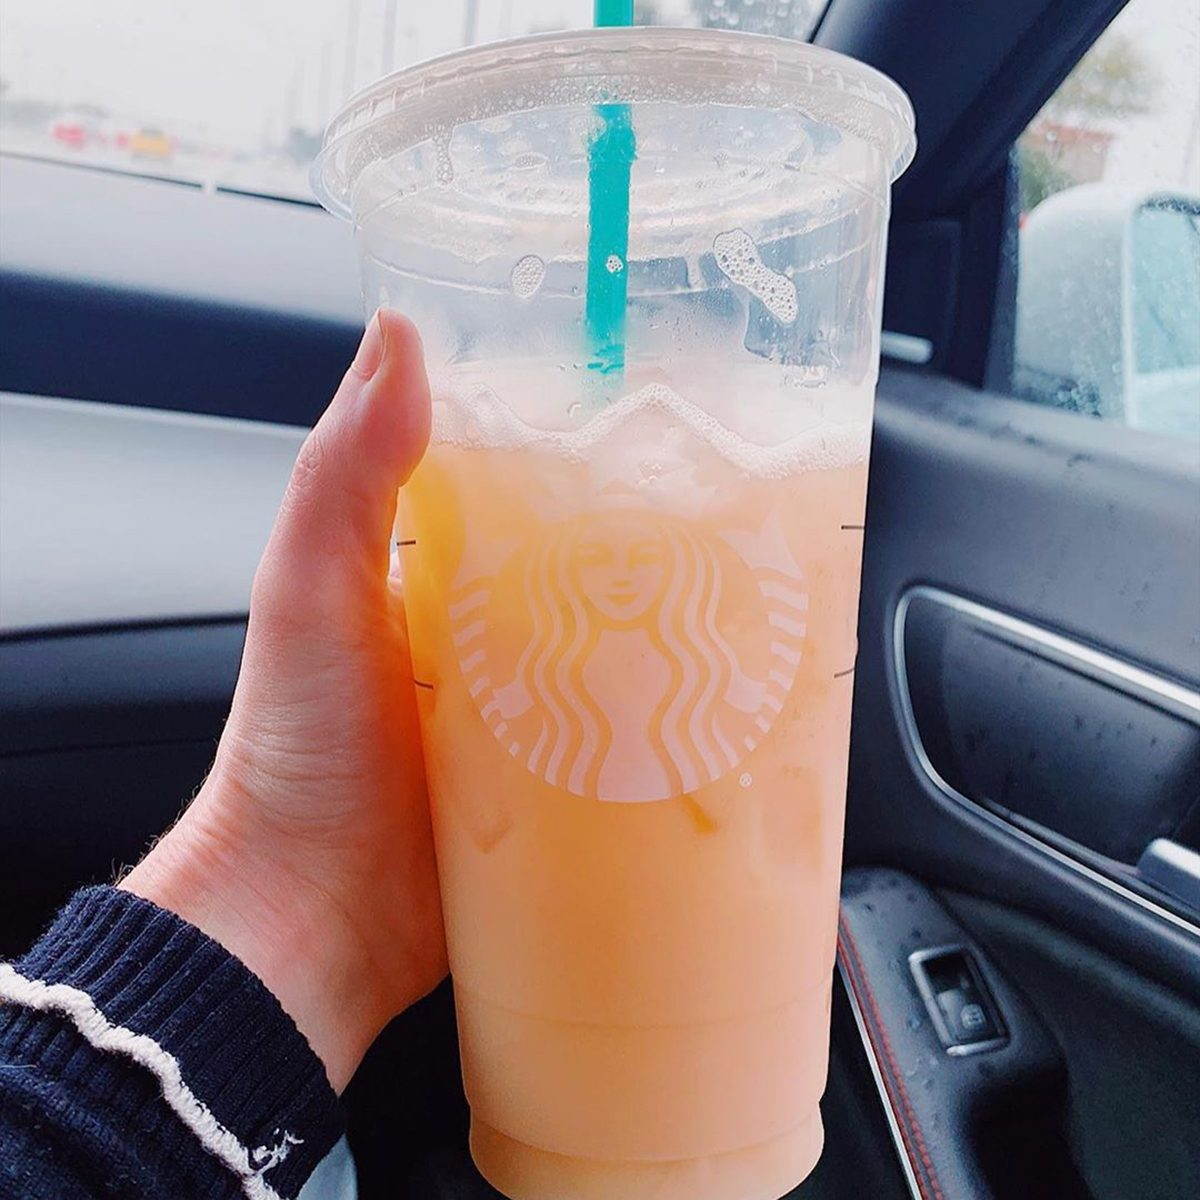 Peach ring drink